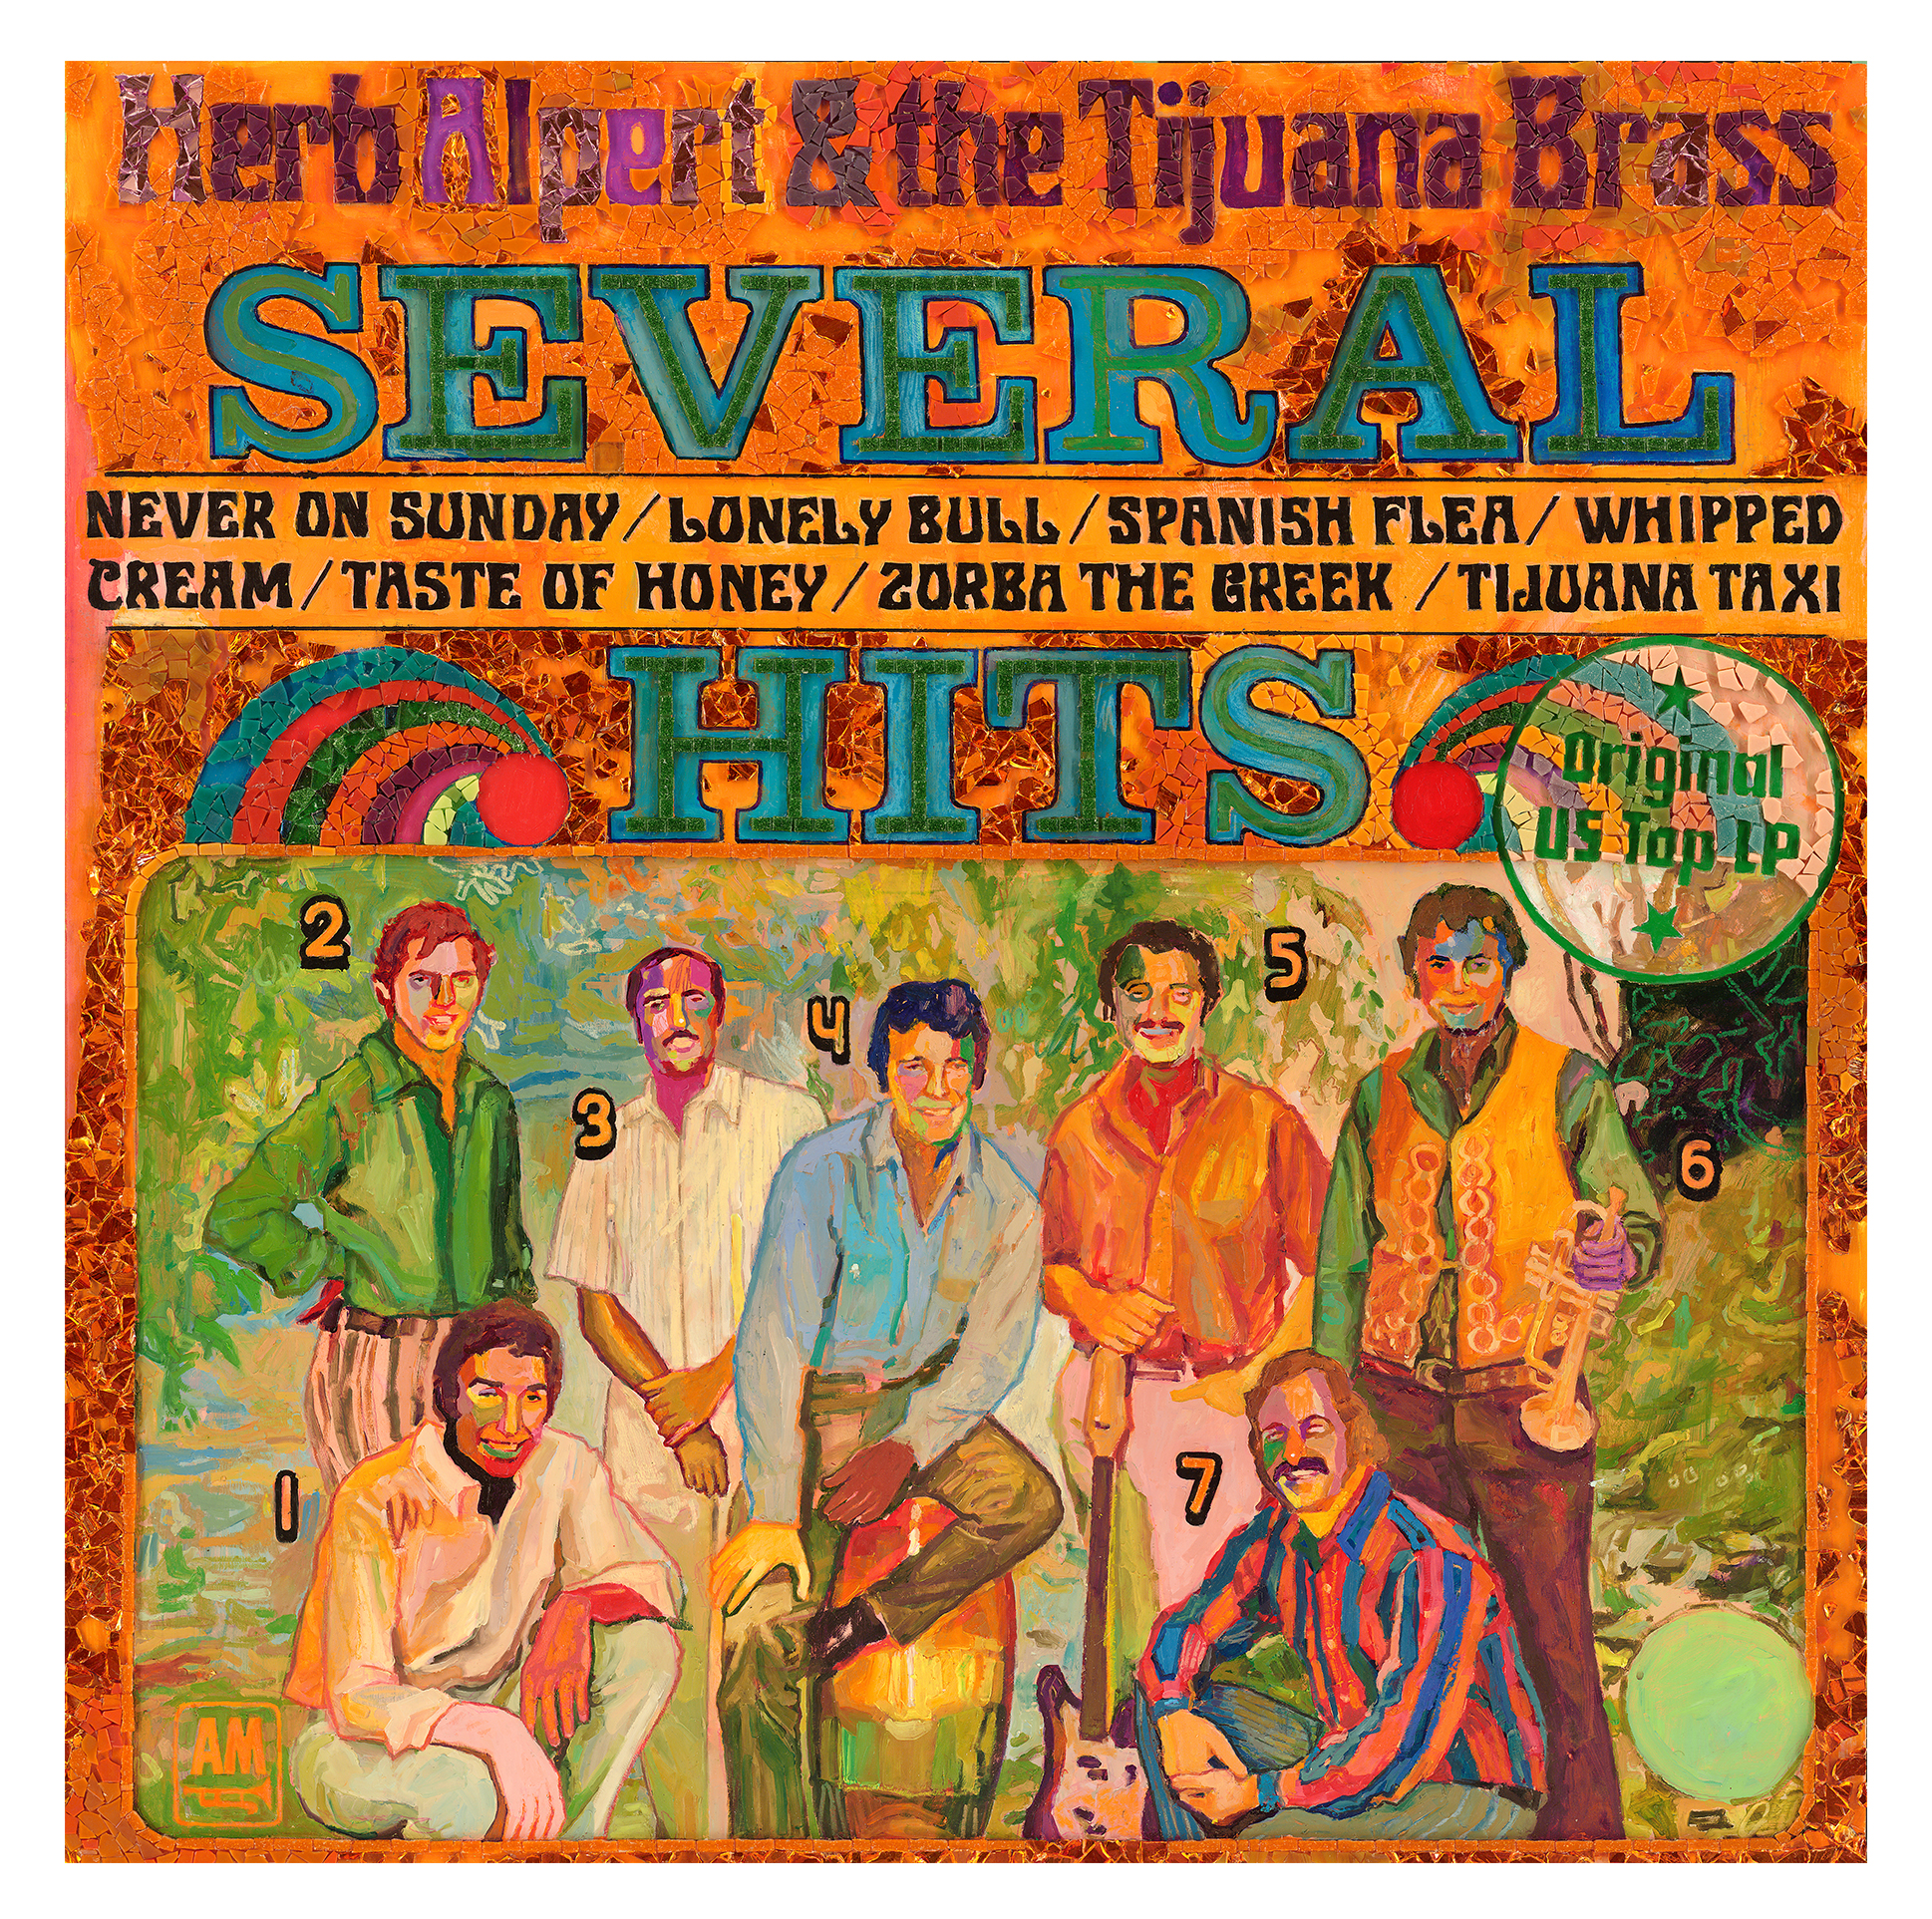 Several // Members of Herb Alpert and the Tijuana Brass +*